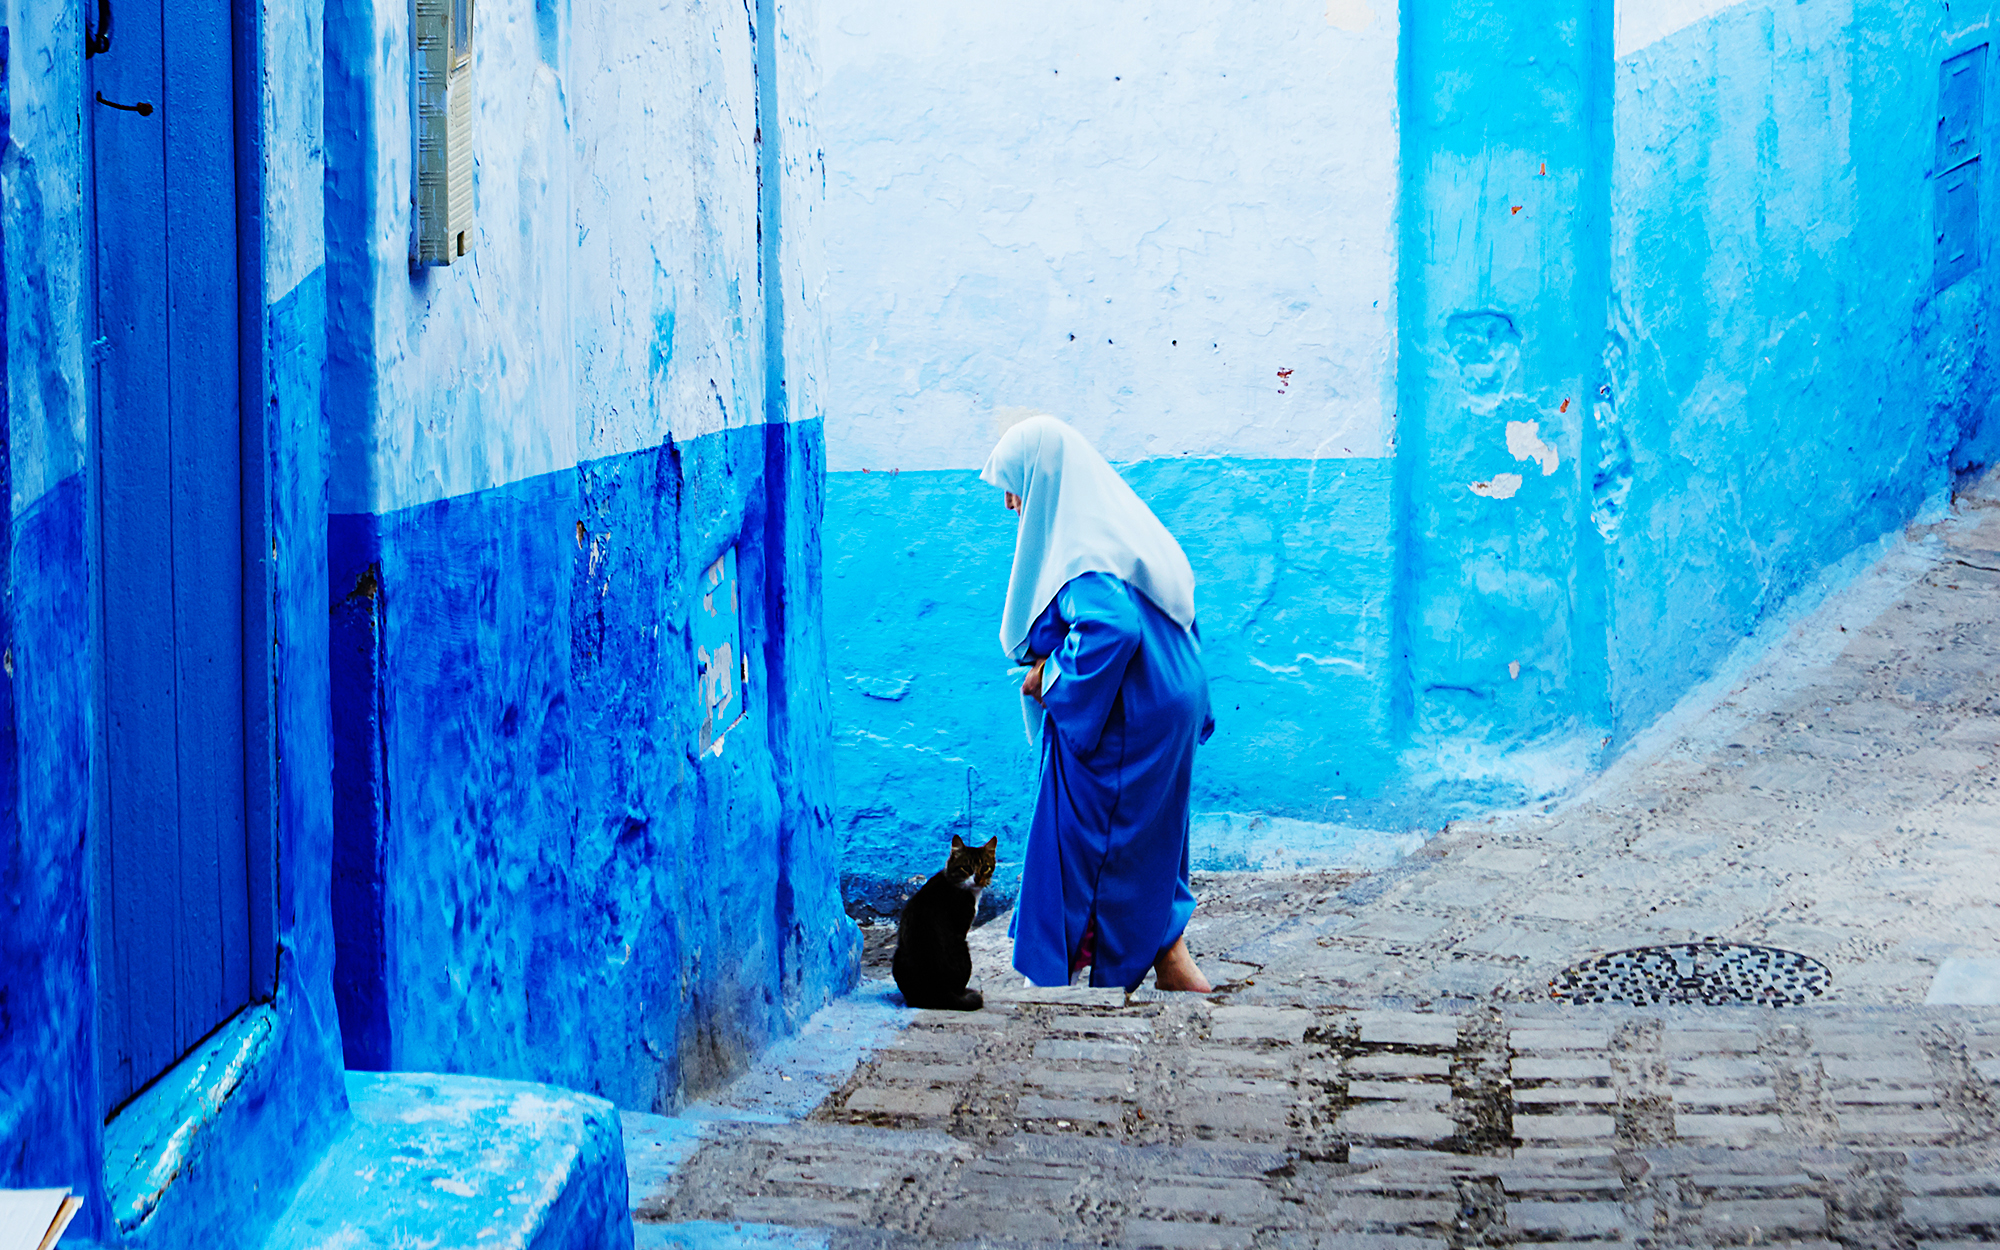 The Morocco Less Traveled: Where to Visit in Morocco